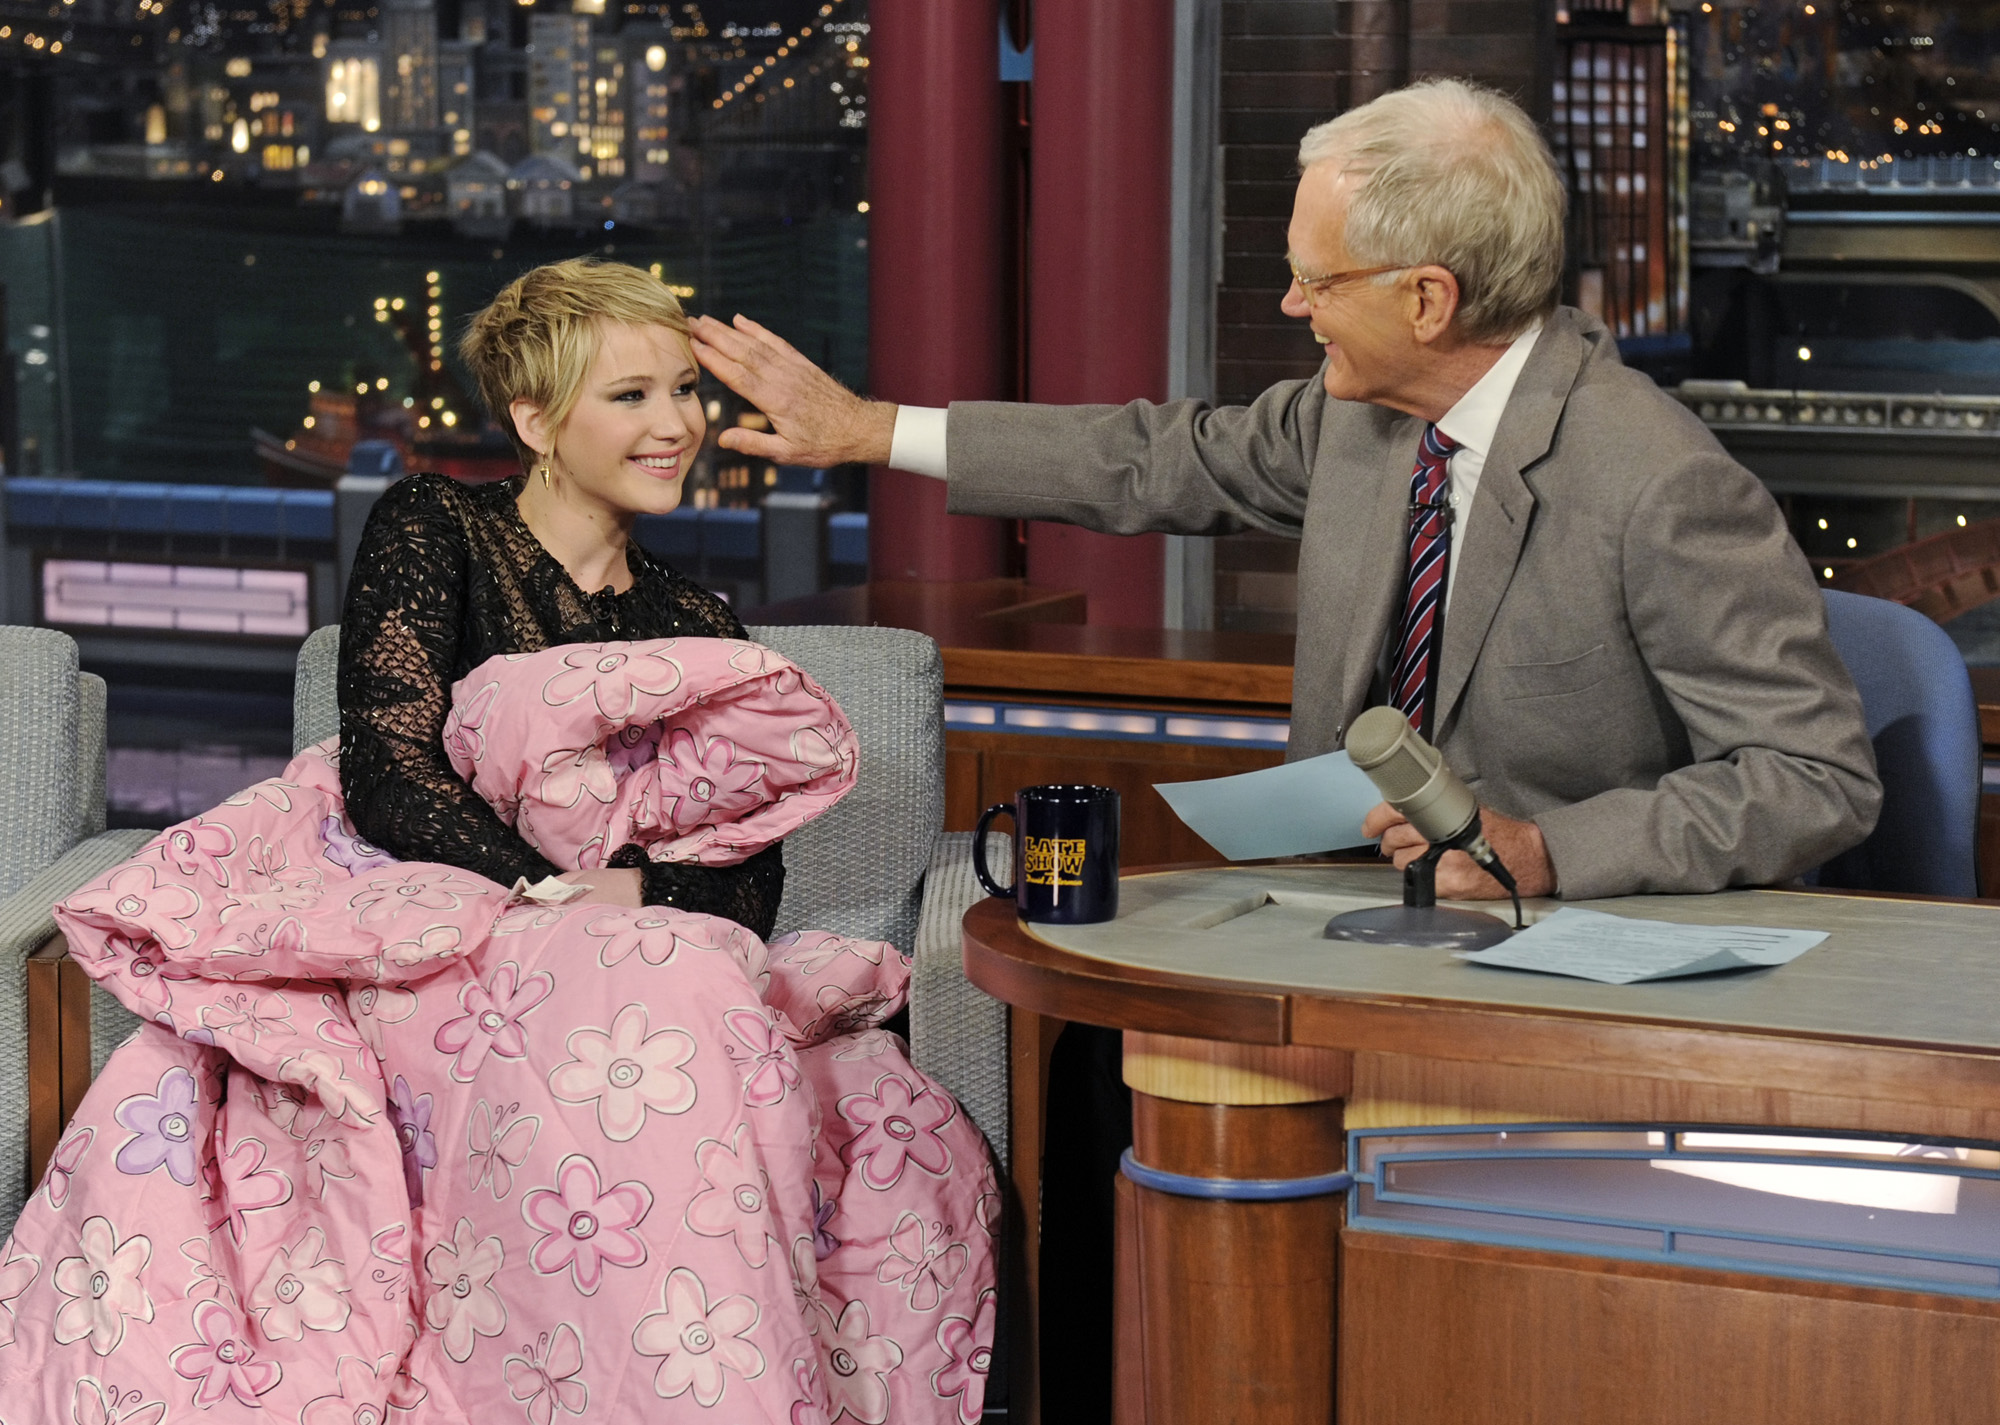 Jennifer Lawrence gets cozy with Dave when she visits the <i>Late Show with David Letterman</i> on Nov. 20, 2013.